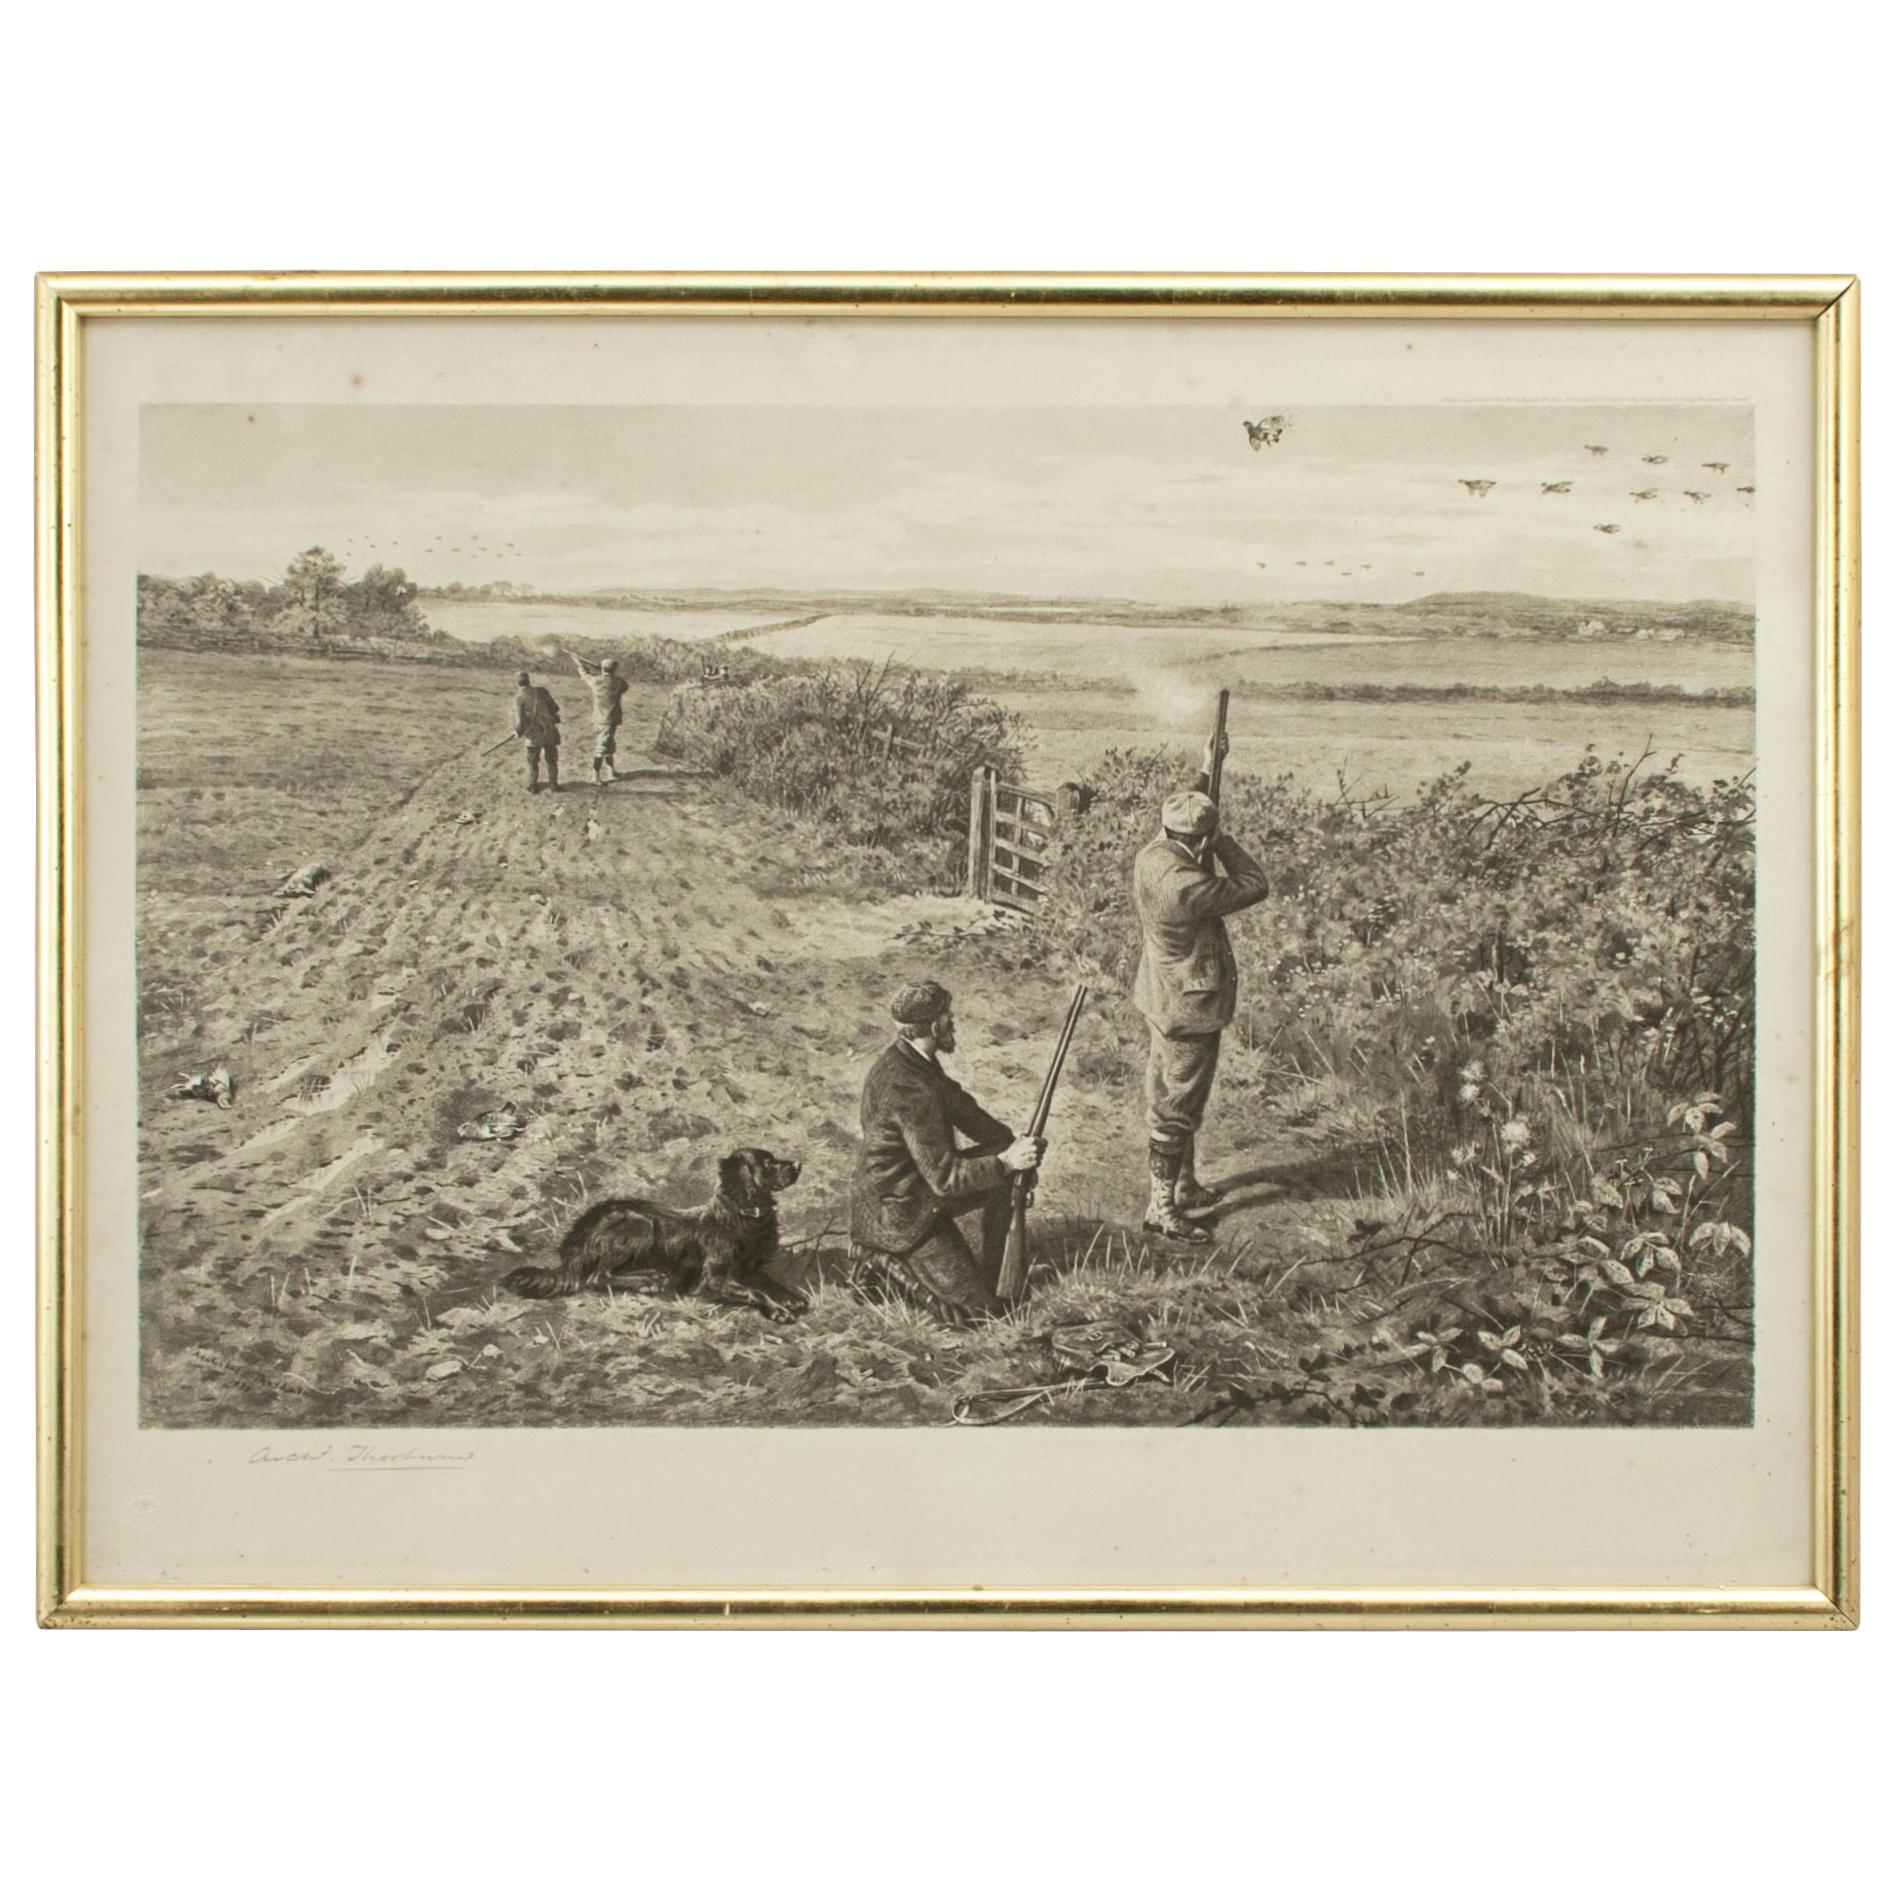 Antique Shooting Print by Archibald Thorburn